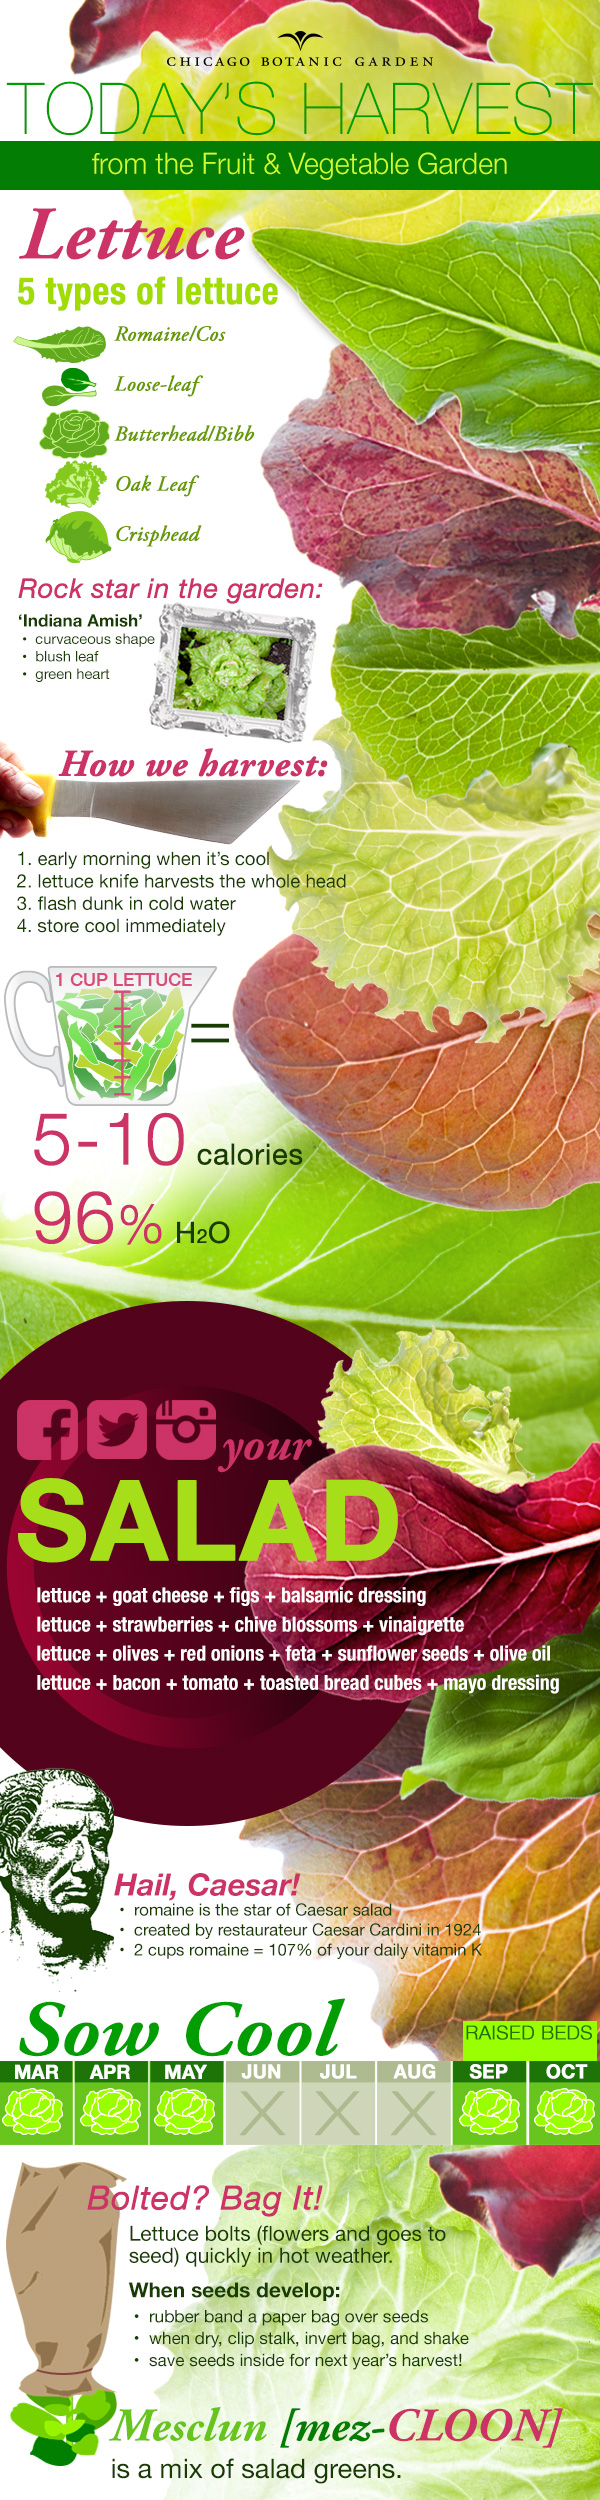 Infographic on cultivating and harvesting lettuce.